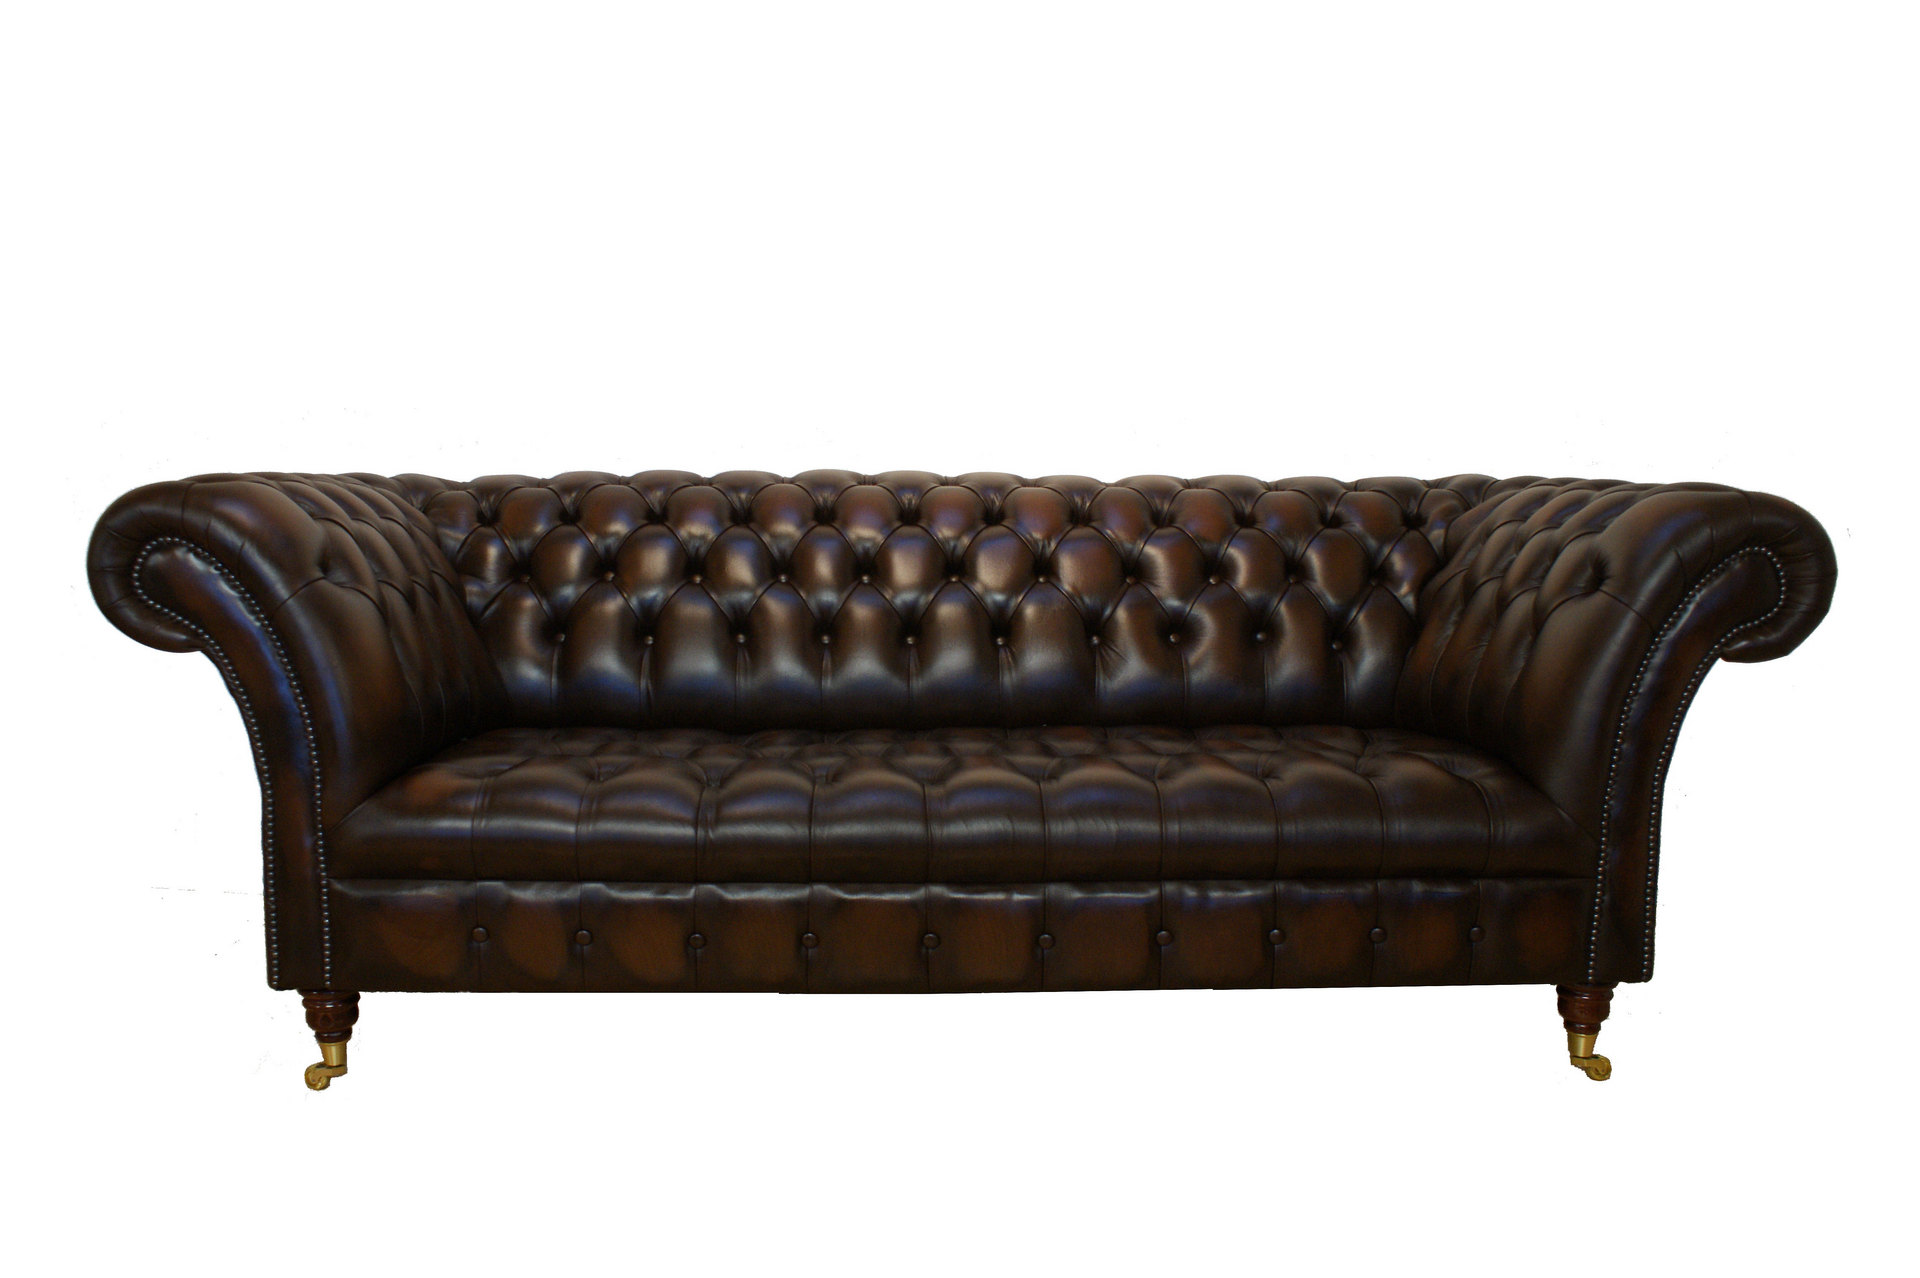 How to buy a cheap chesterfield sofa designersofas4u blog for Furniture sofas and couches